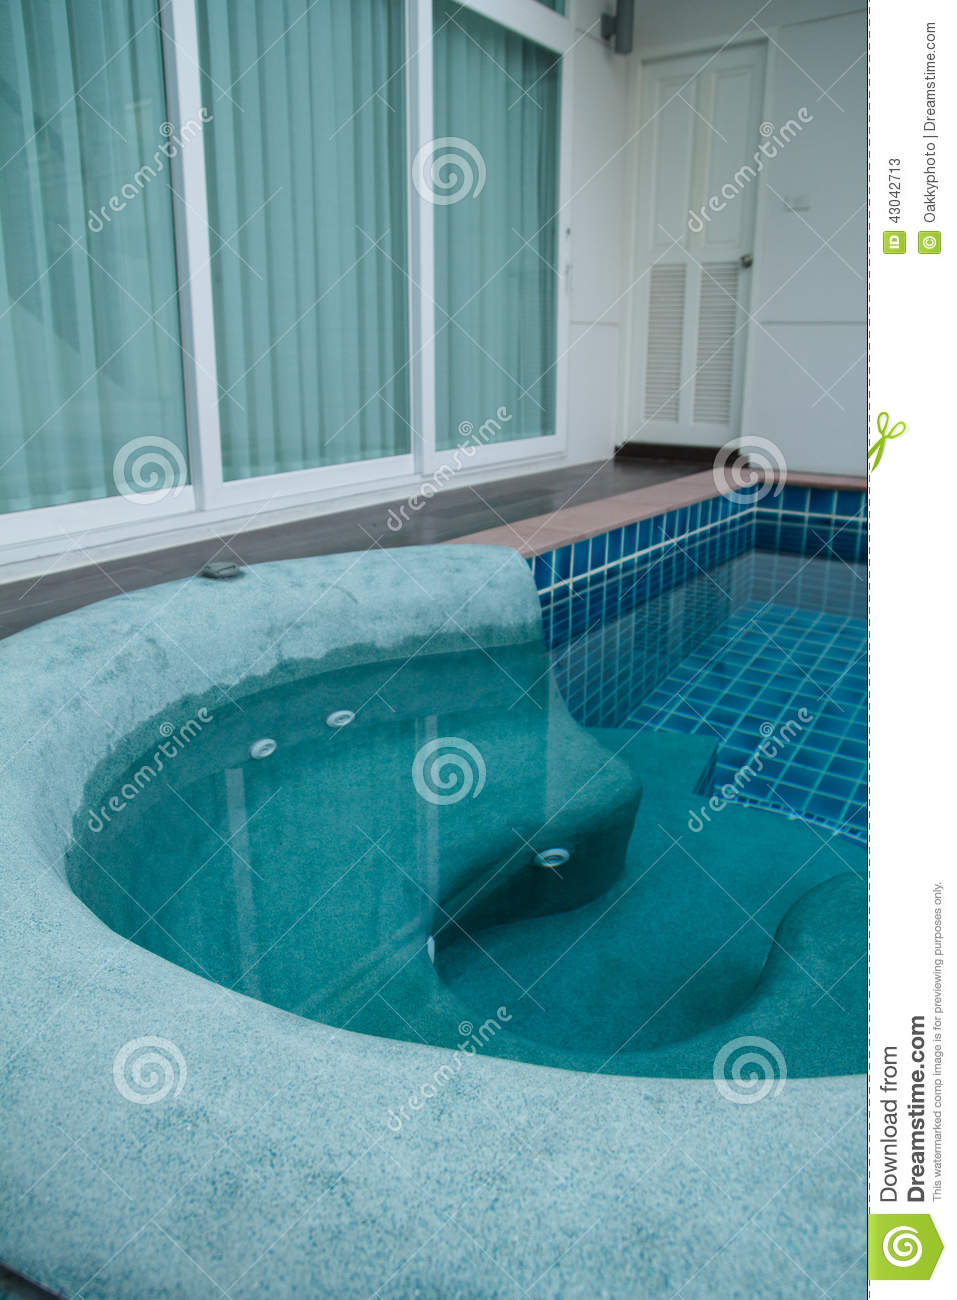 jacuzzi in the swimming pool stock photo image 43042713. Black Bedroom Furniture Sets. Home Design Ideas